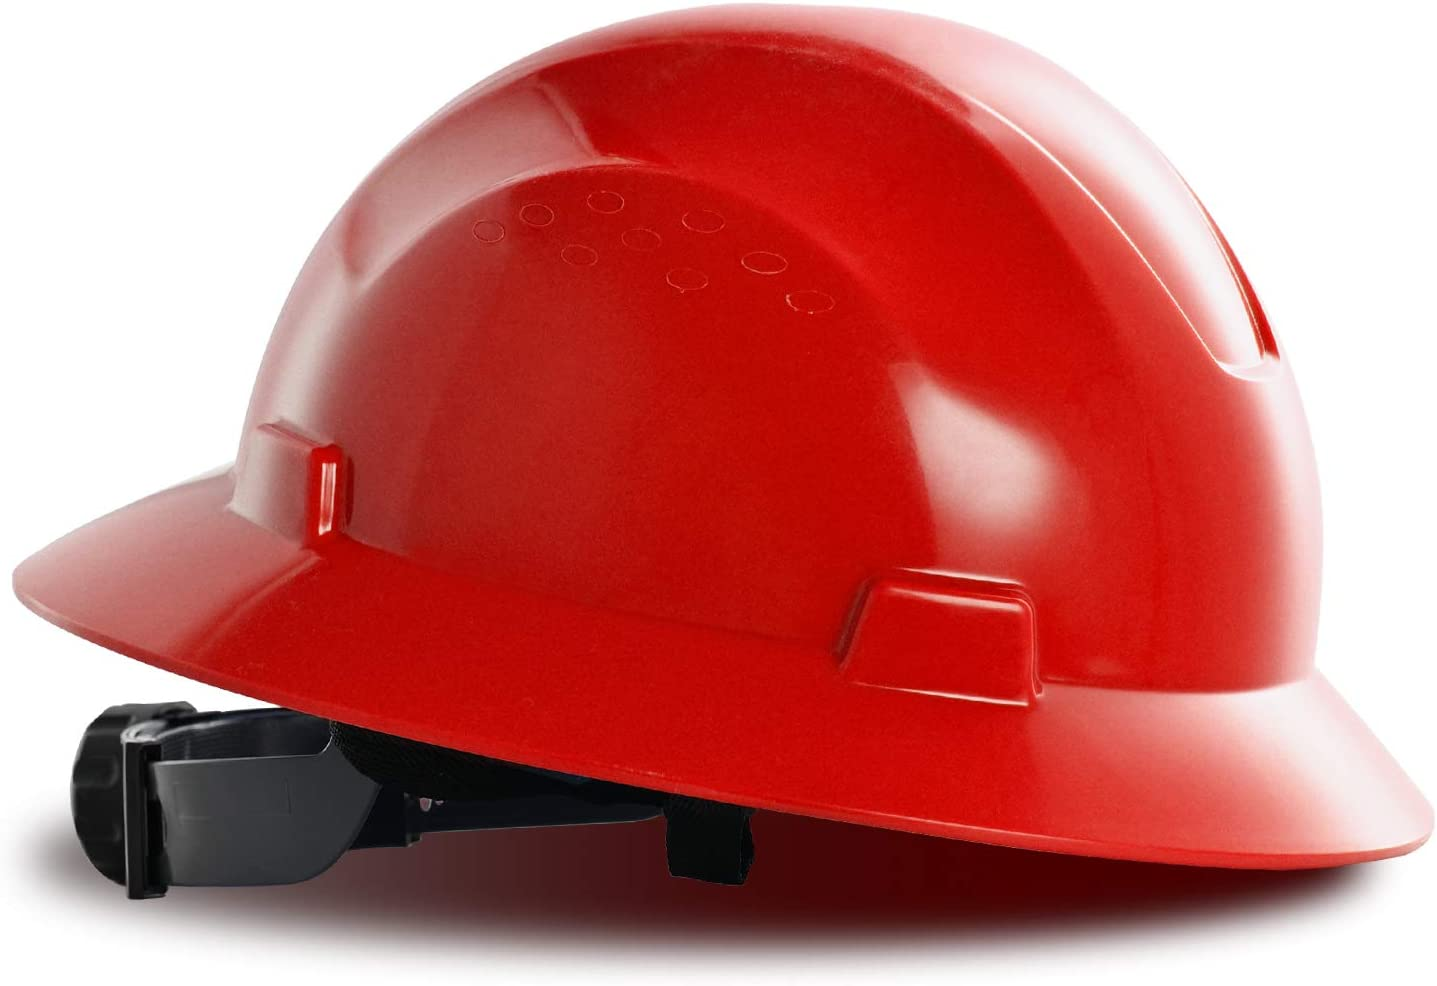 LANON Full Brim Hard Hats Adjustable Helmet 4 wholesale Outlet ☆ Free Shipping HDPE with Safety